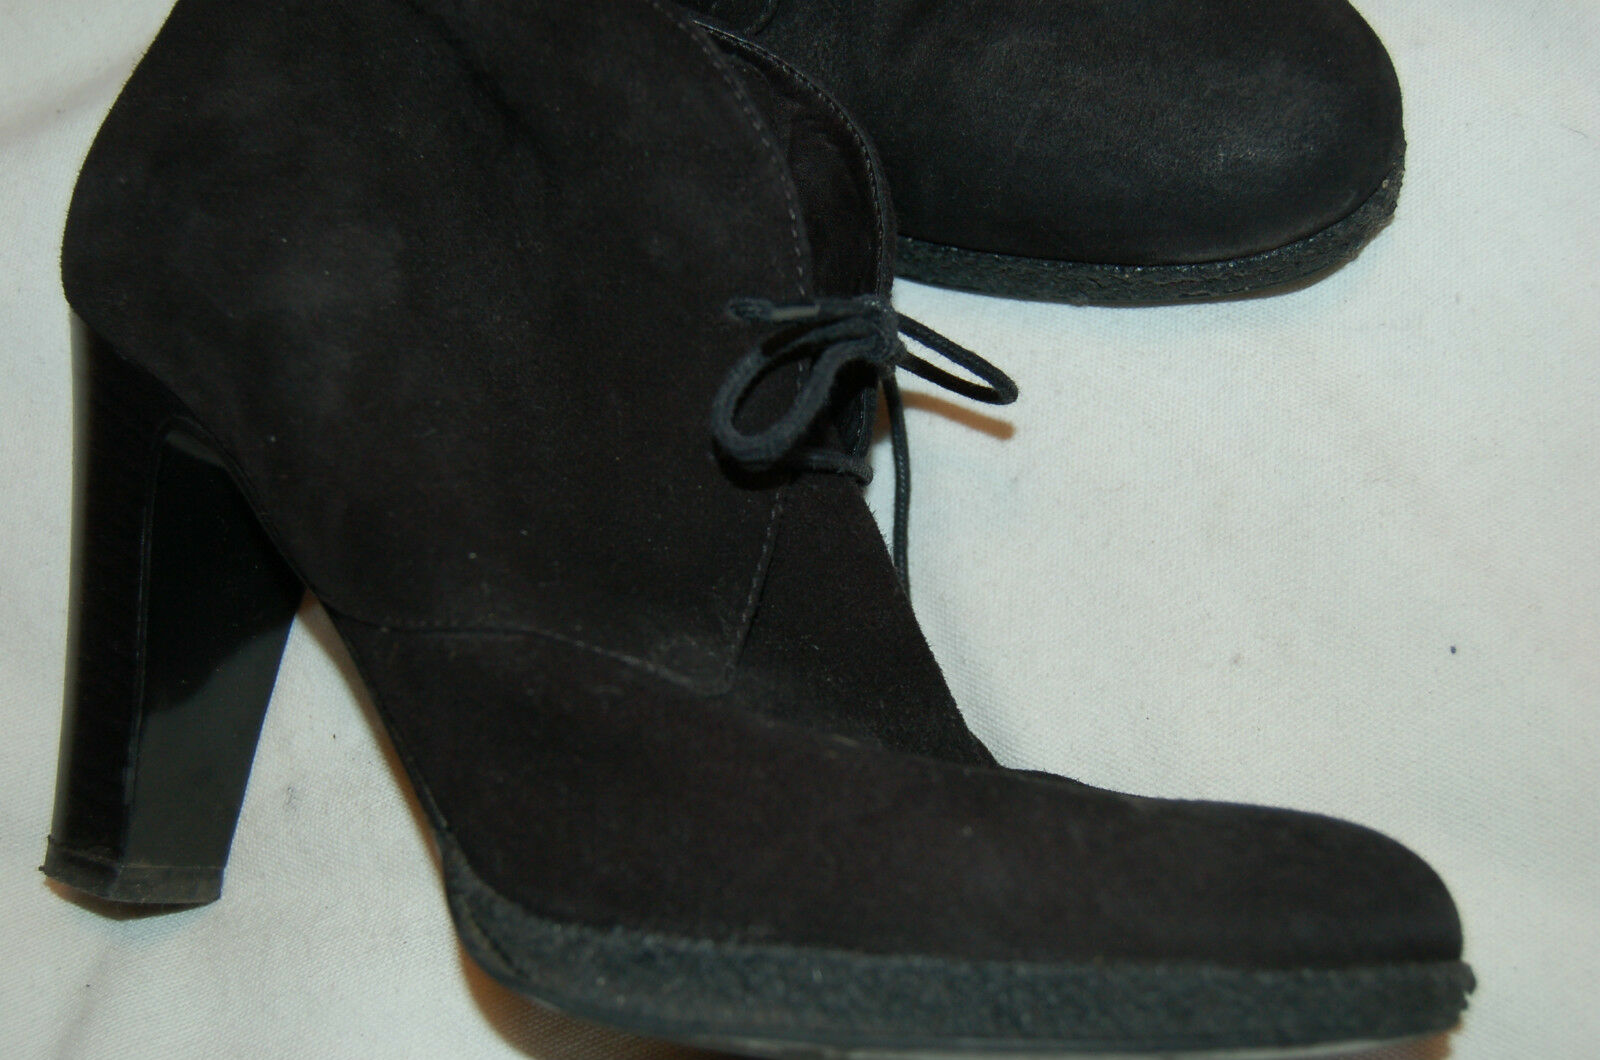 J. Crew Black Suede Ankle Lace-up Heels Boots Shoes Size 9 Made in Italy